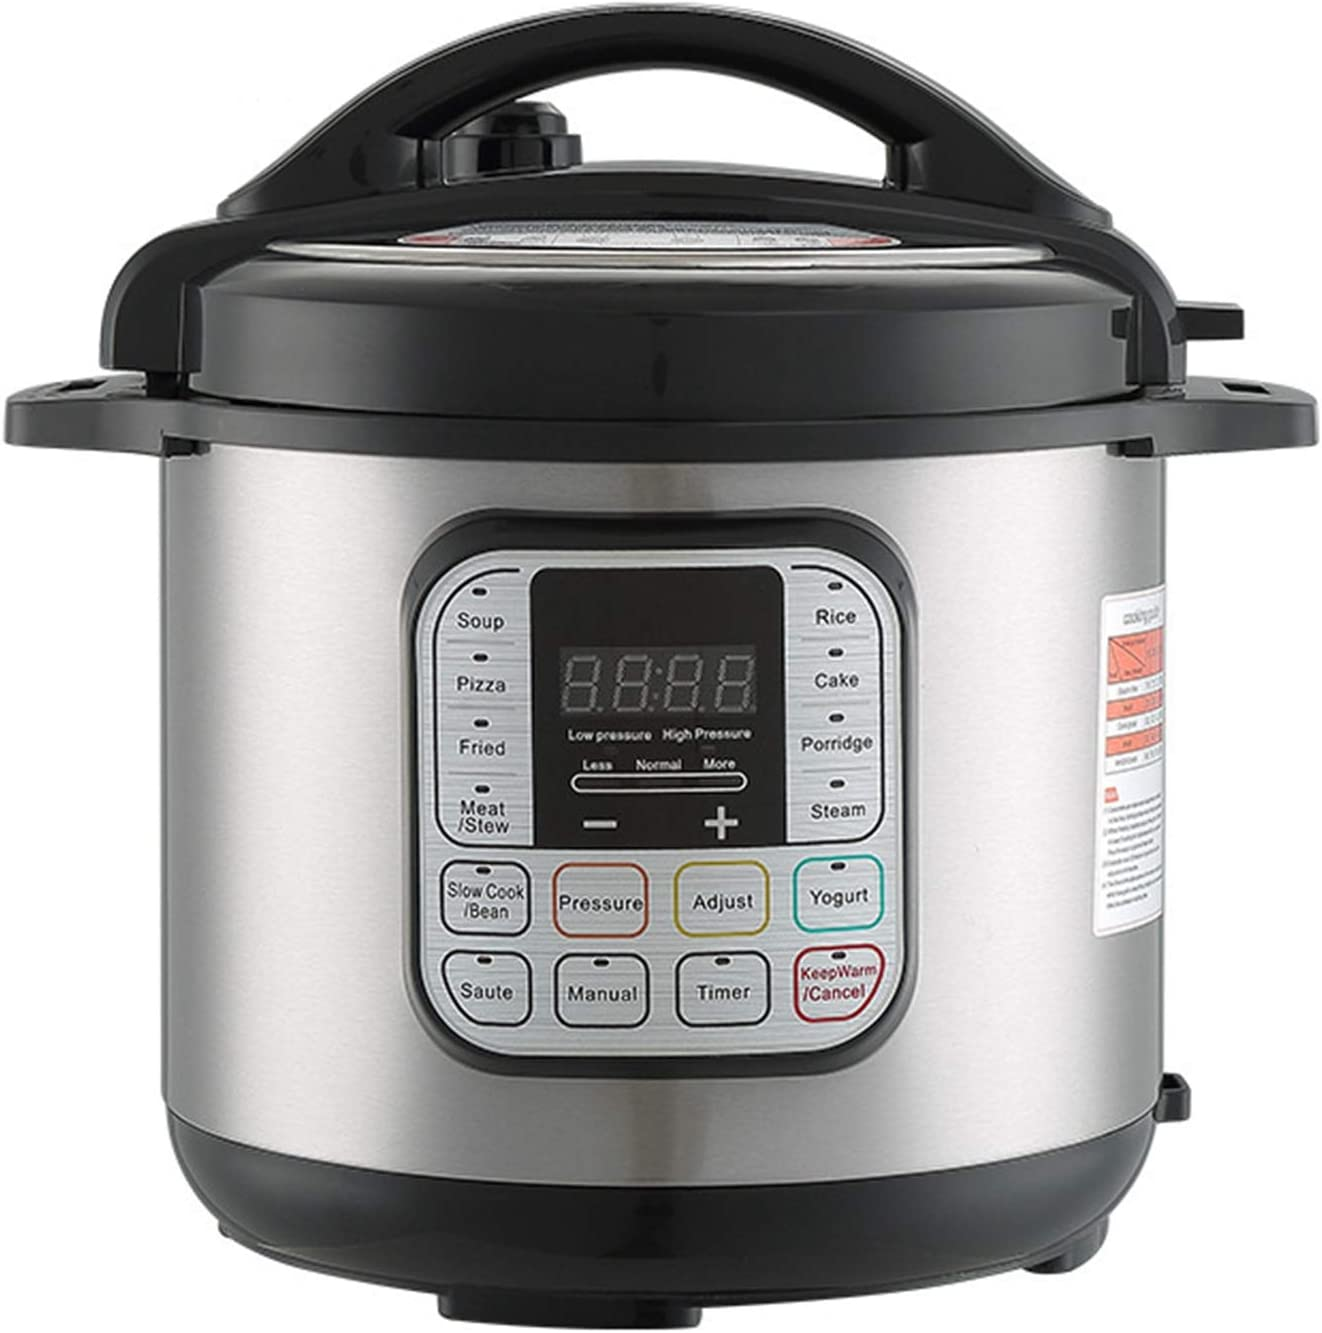 10-in-1 Electric Pressure Cooker, Sterilizer, Slow Cooker, Rice Cooker, Ceramic Non-Stick Interior Coated Inner Cooking Pot - 6L